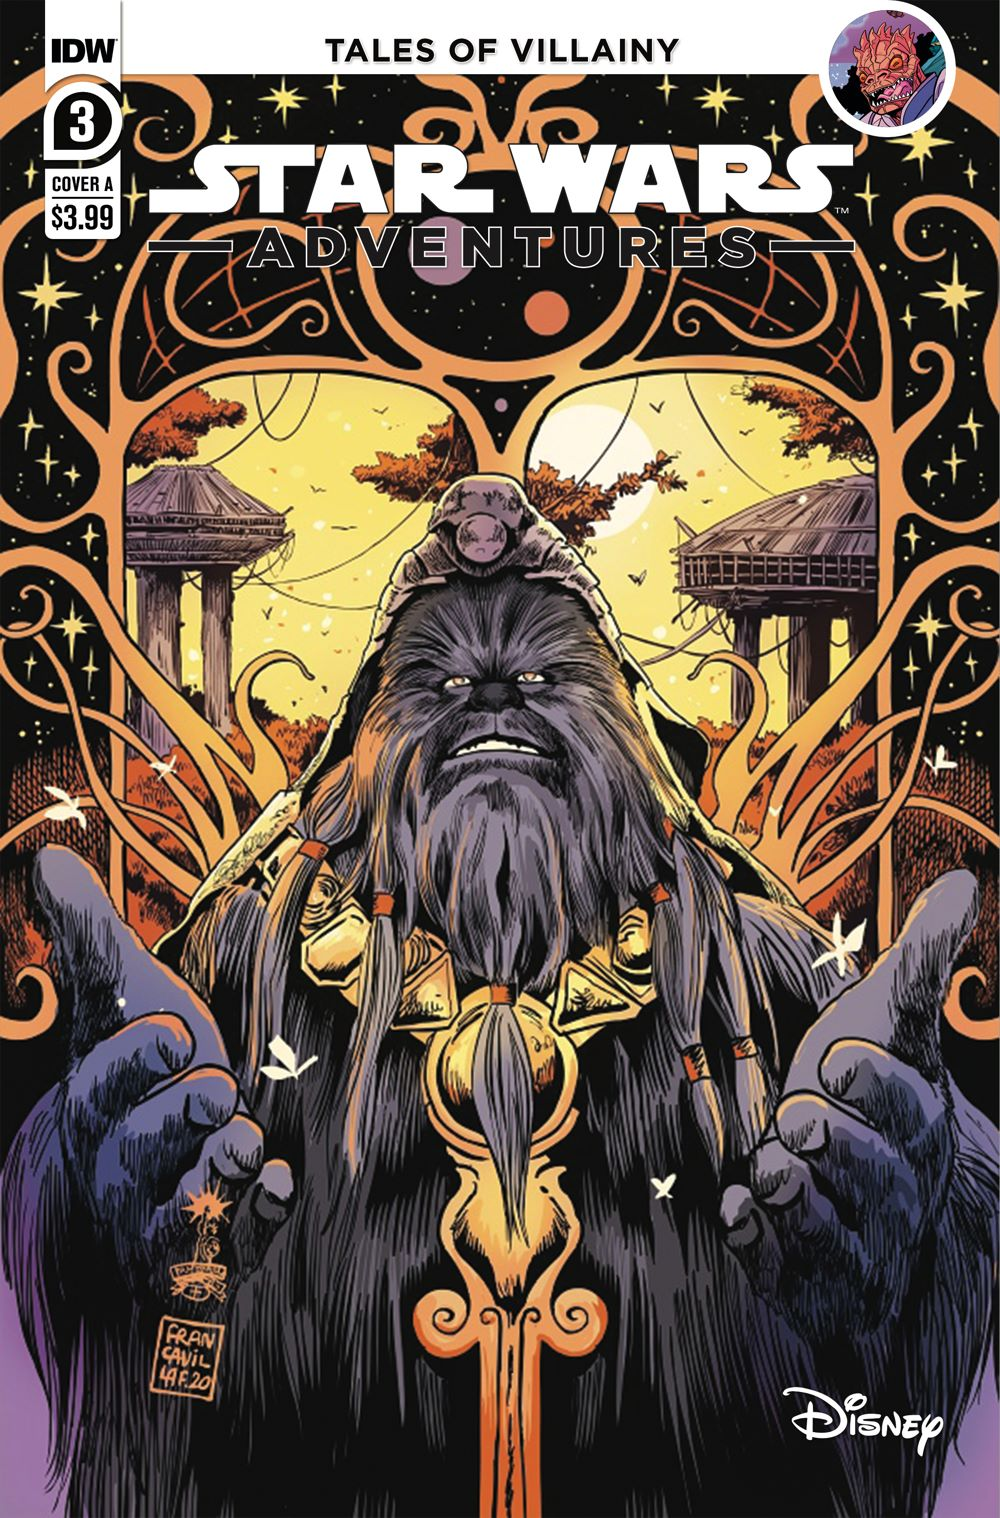 StarWars_03-coverA ComicList: IDW Publishing New Releases for 02/03/2021